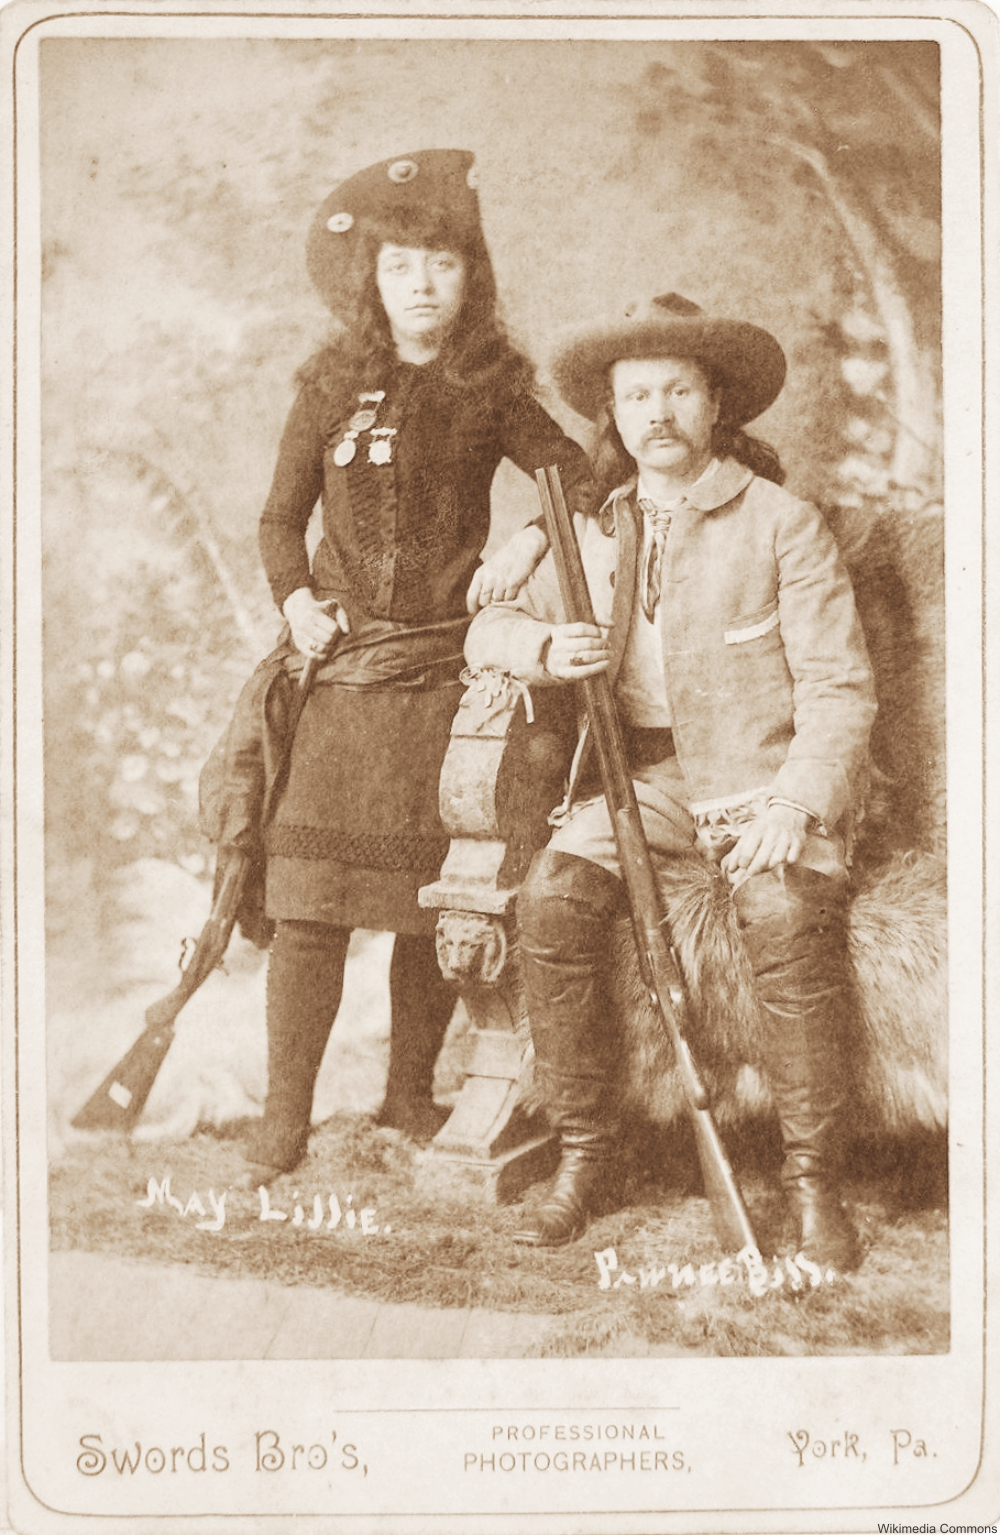 Sharpshooters of the Old West